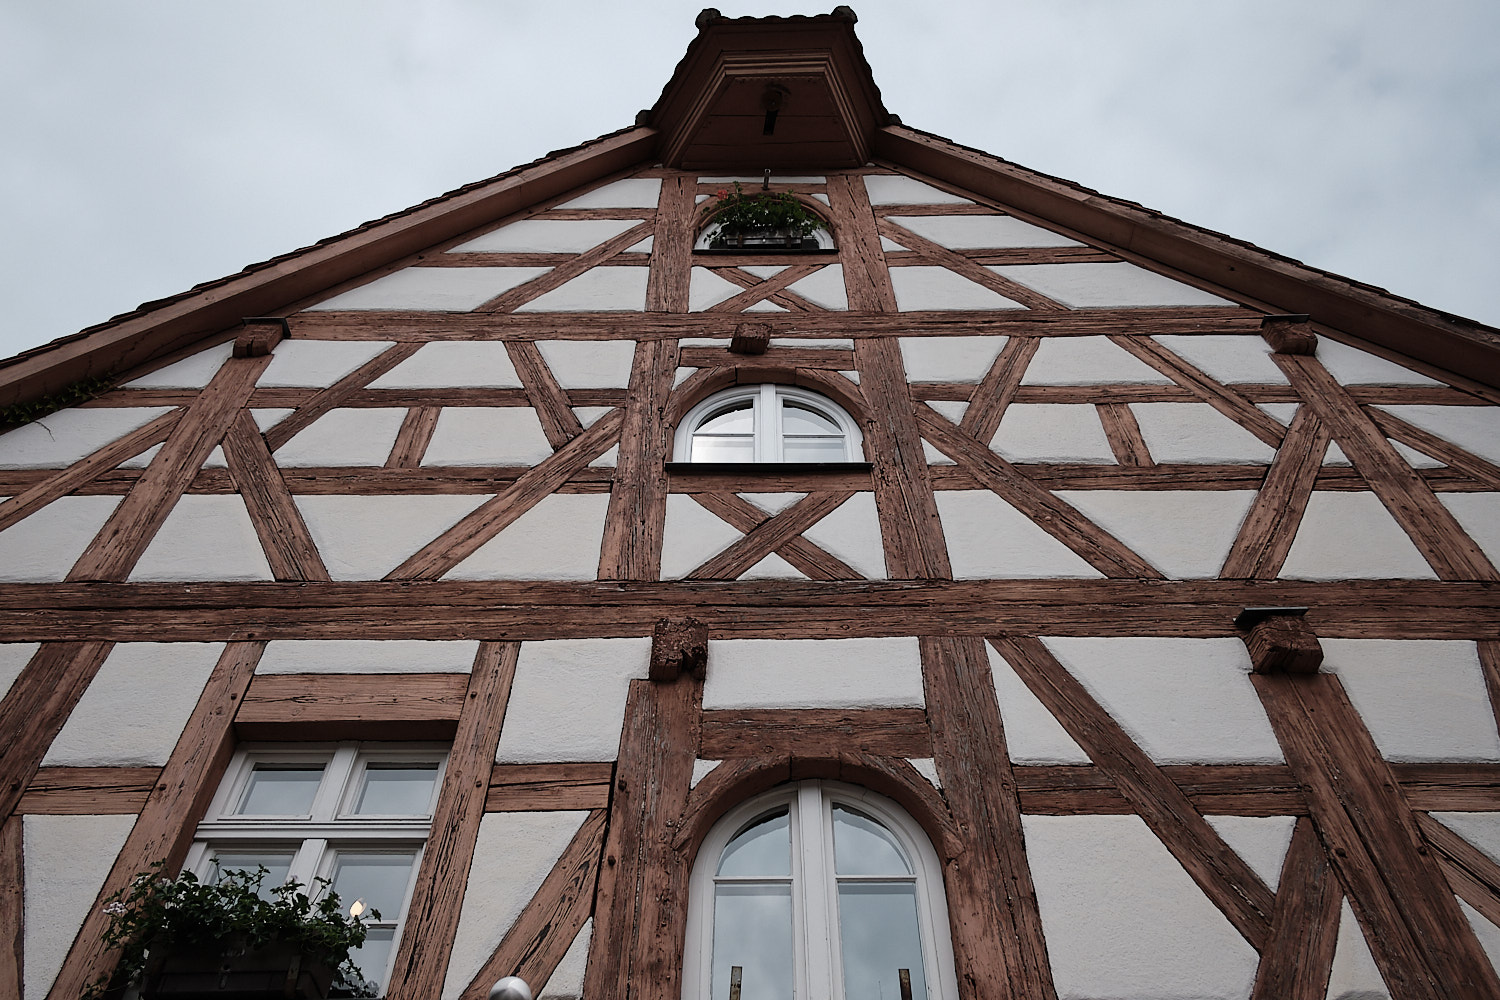 Houses of Franconia with high roofs and attics for the storage hops.